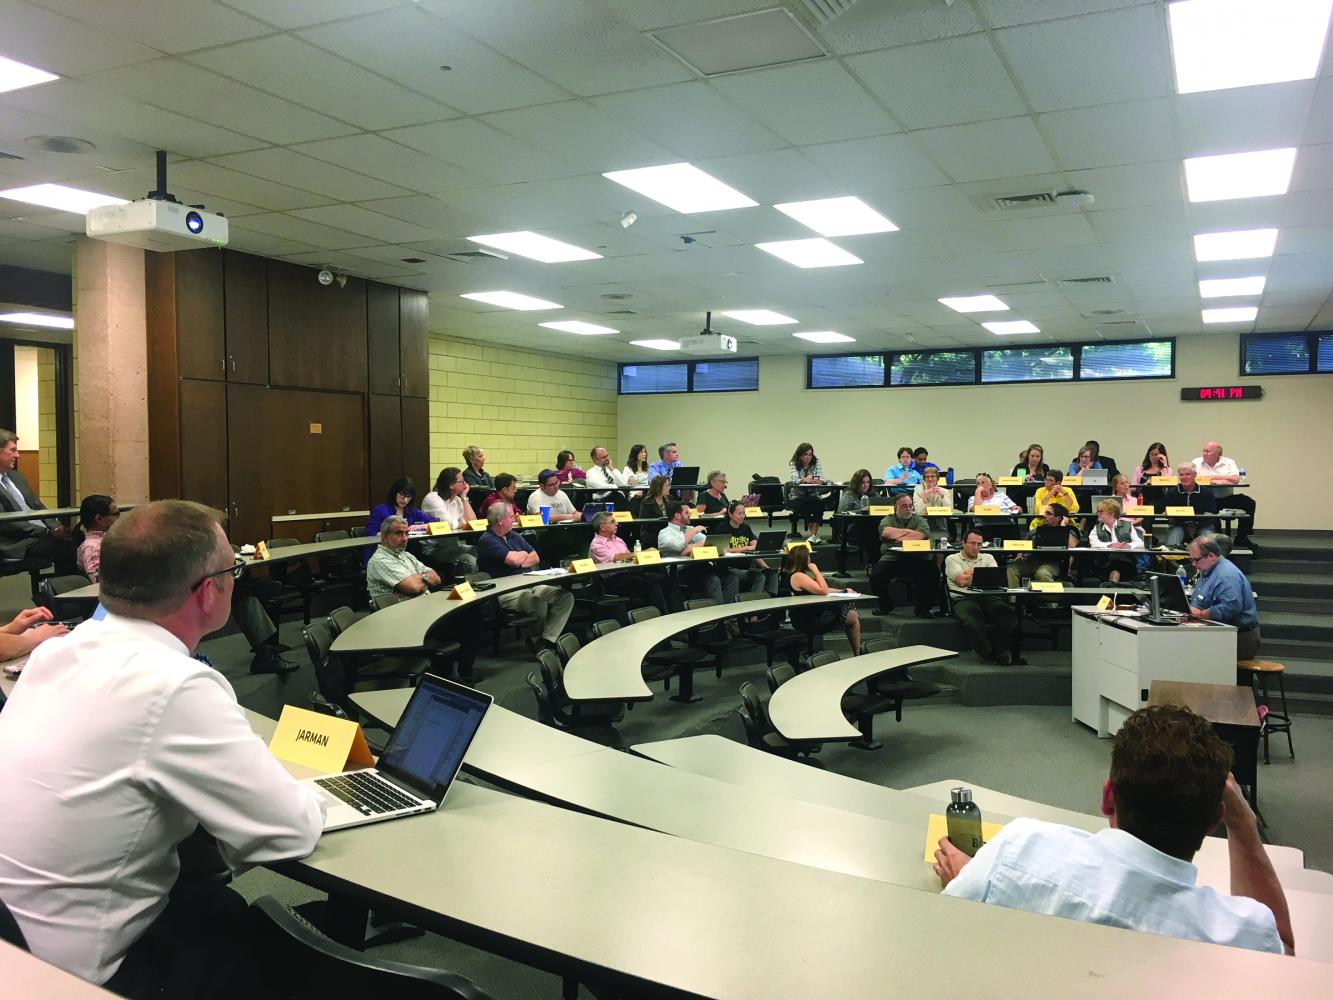 Rick Muma addressed the faculty senate with updates on Wichita State's strategic enrollment plan